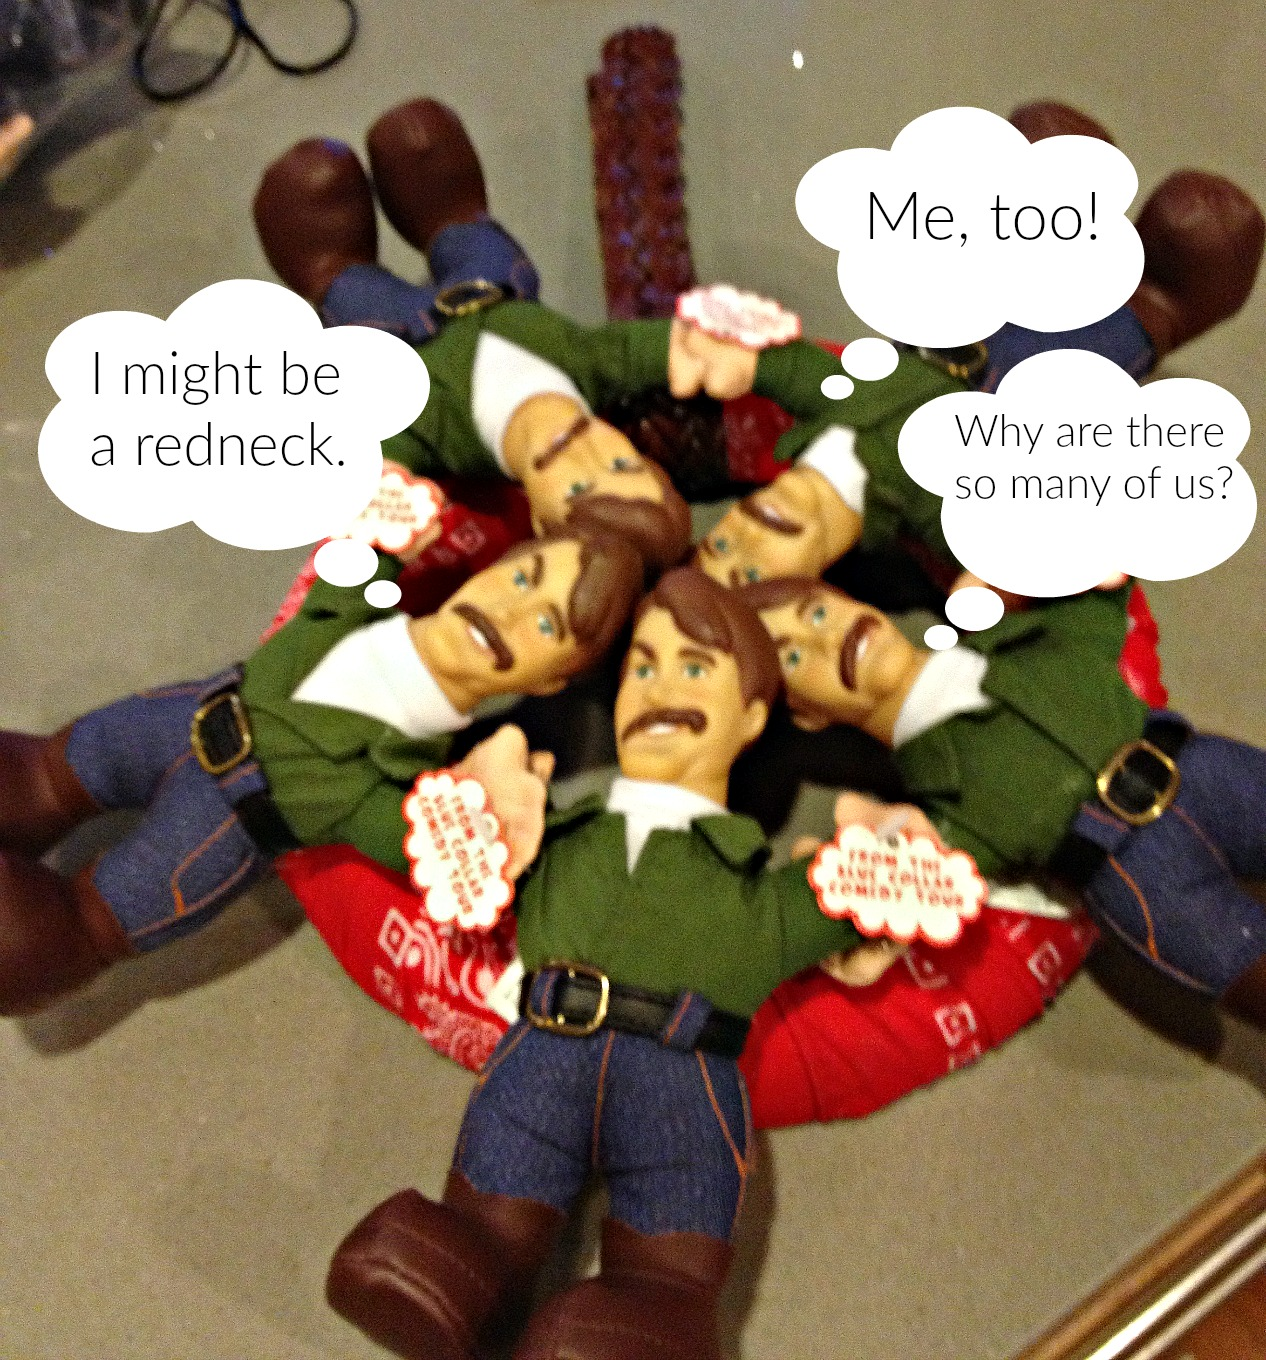 You Might Be a Redneck Wreath conversation - thediybungalow.com